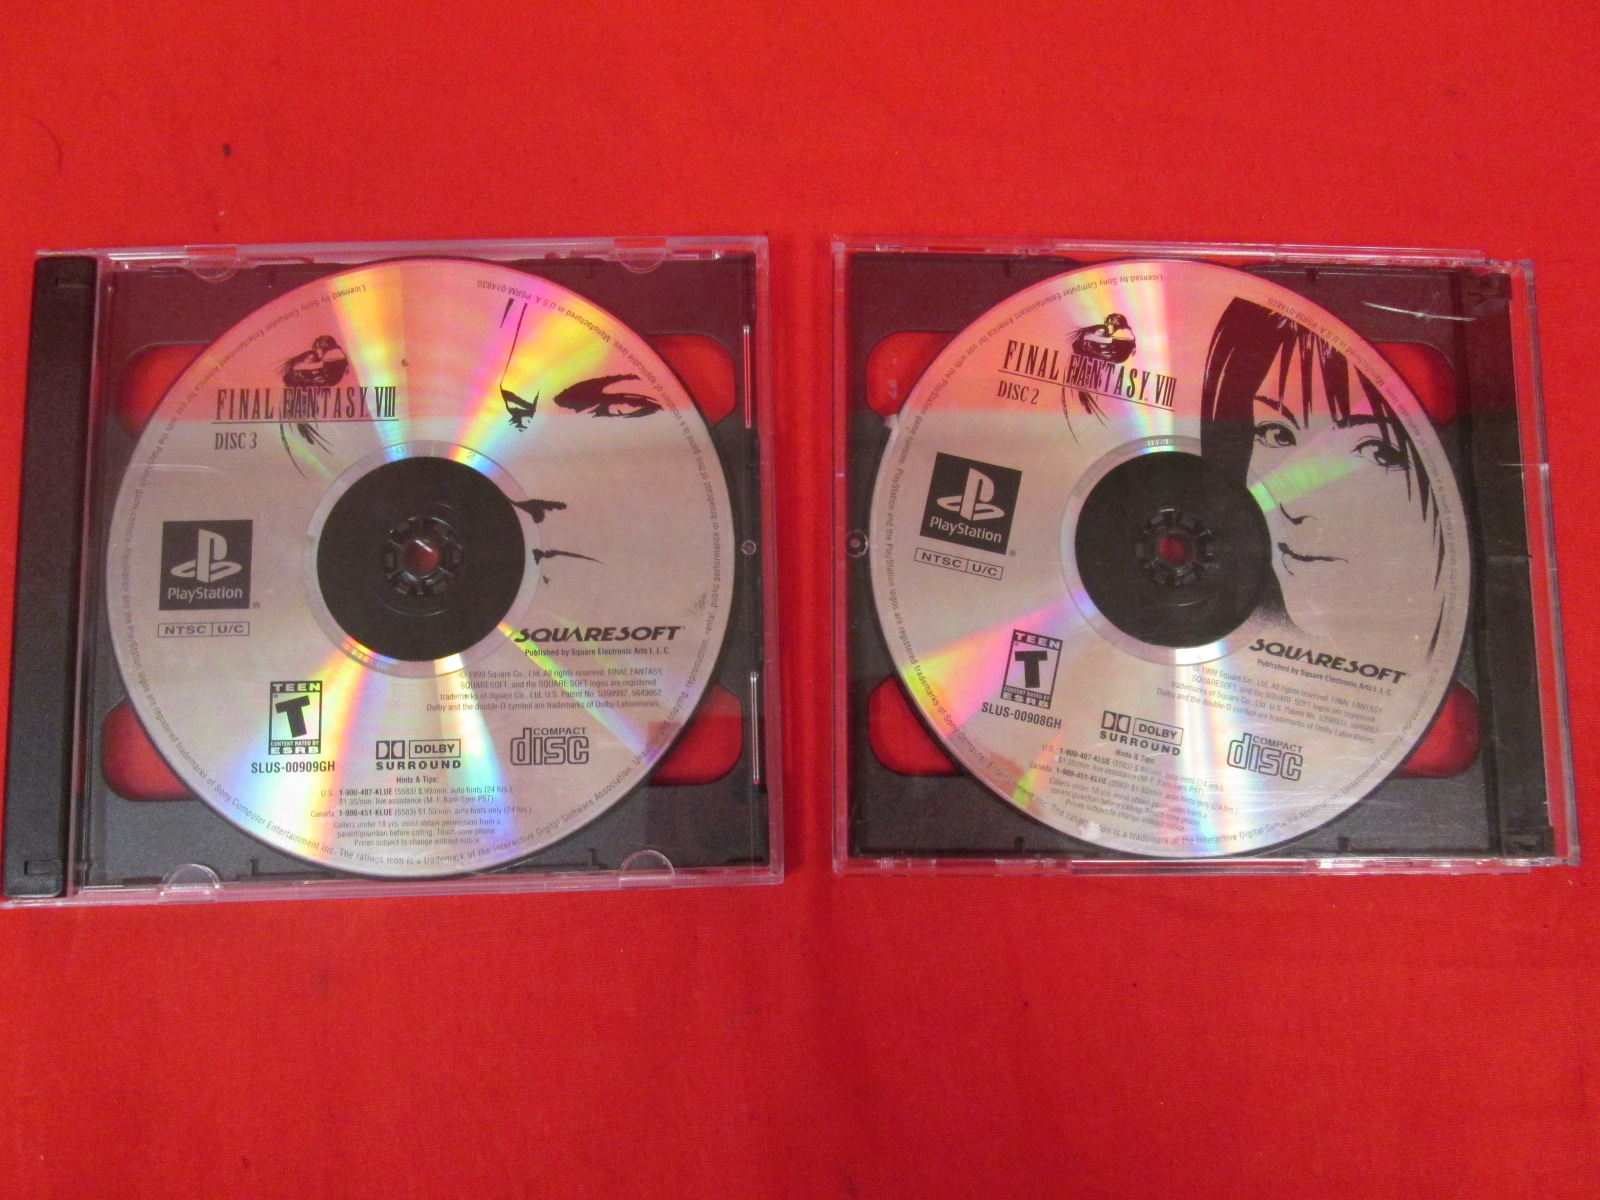 Replacement Discs 2 And 3 Final Fantasy VIII For PlayStation 1